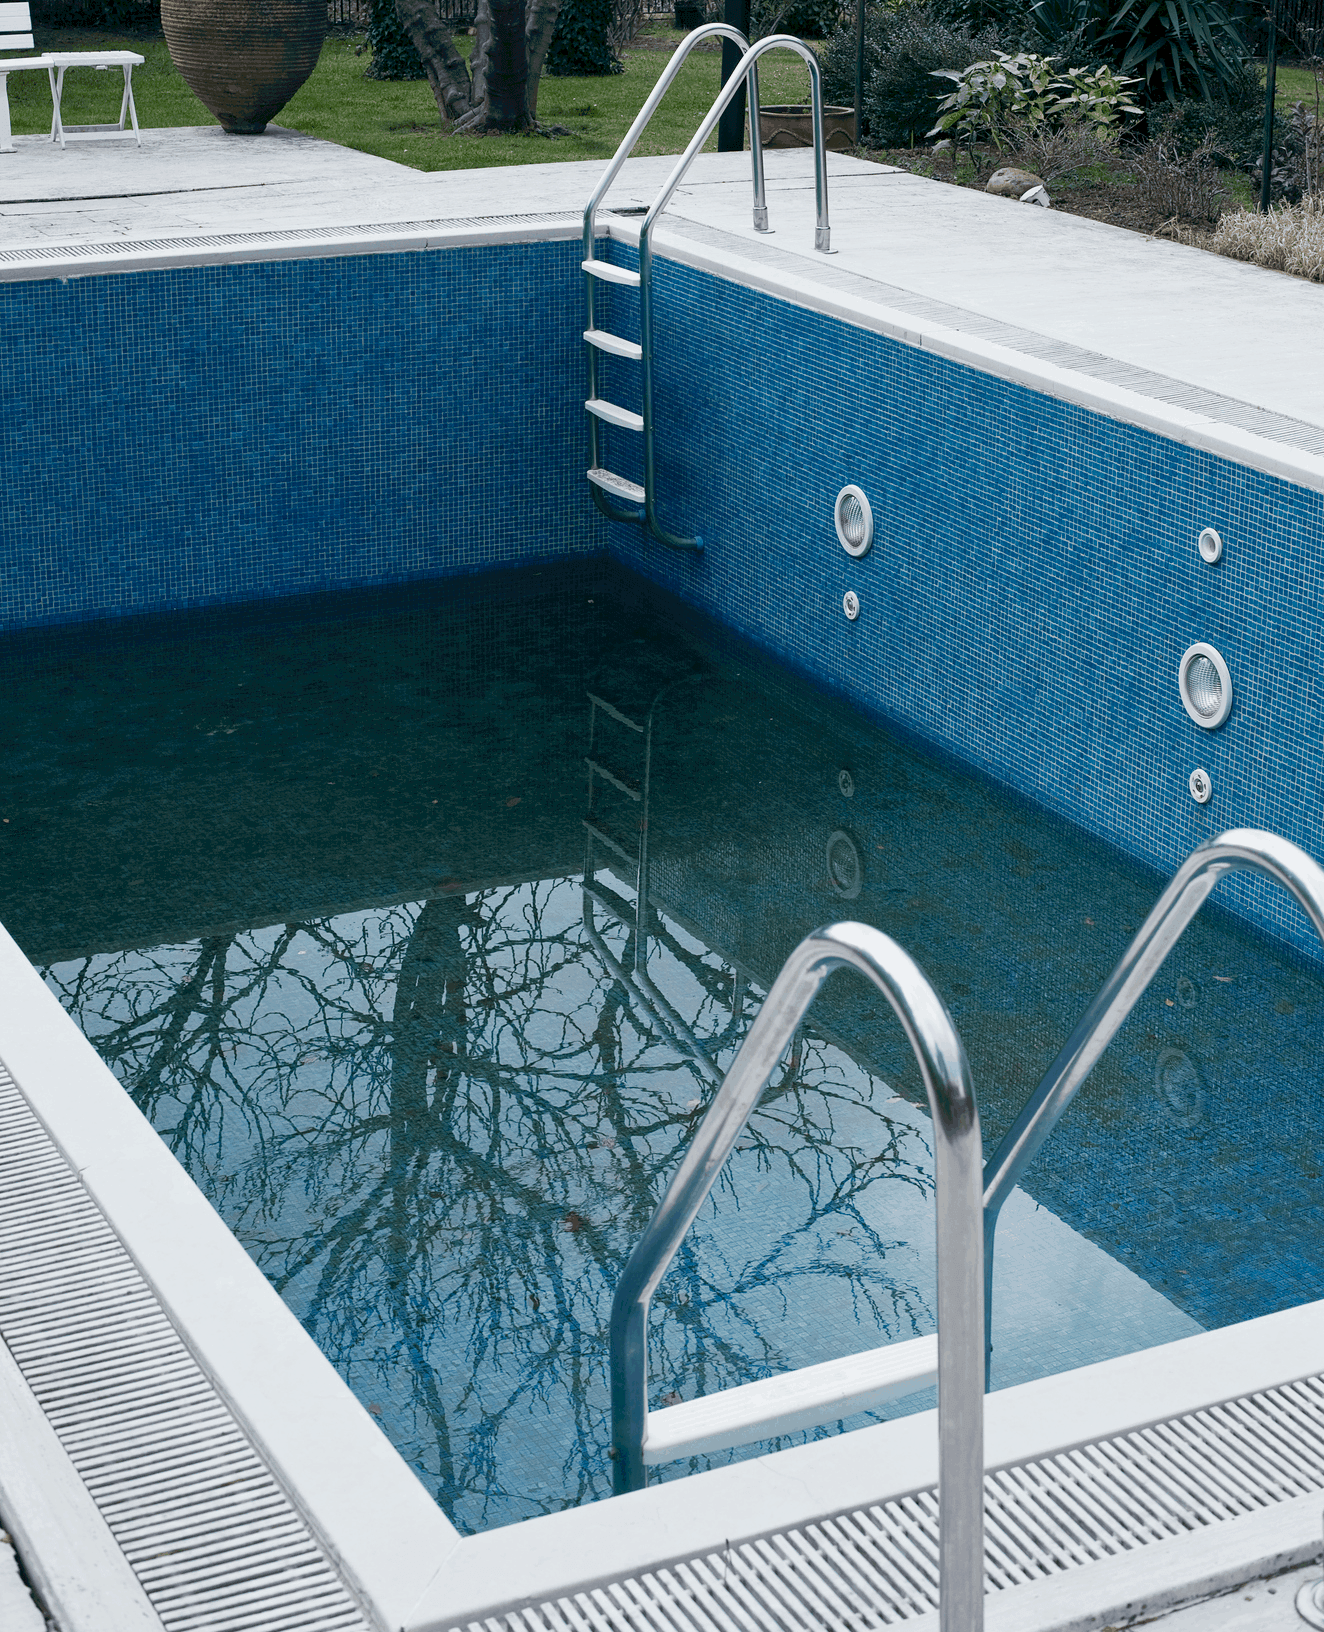 Pool leak detection Mount Eliza